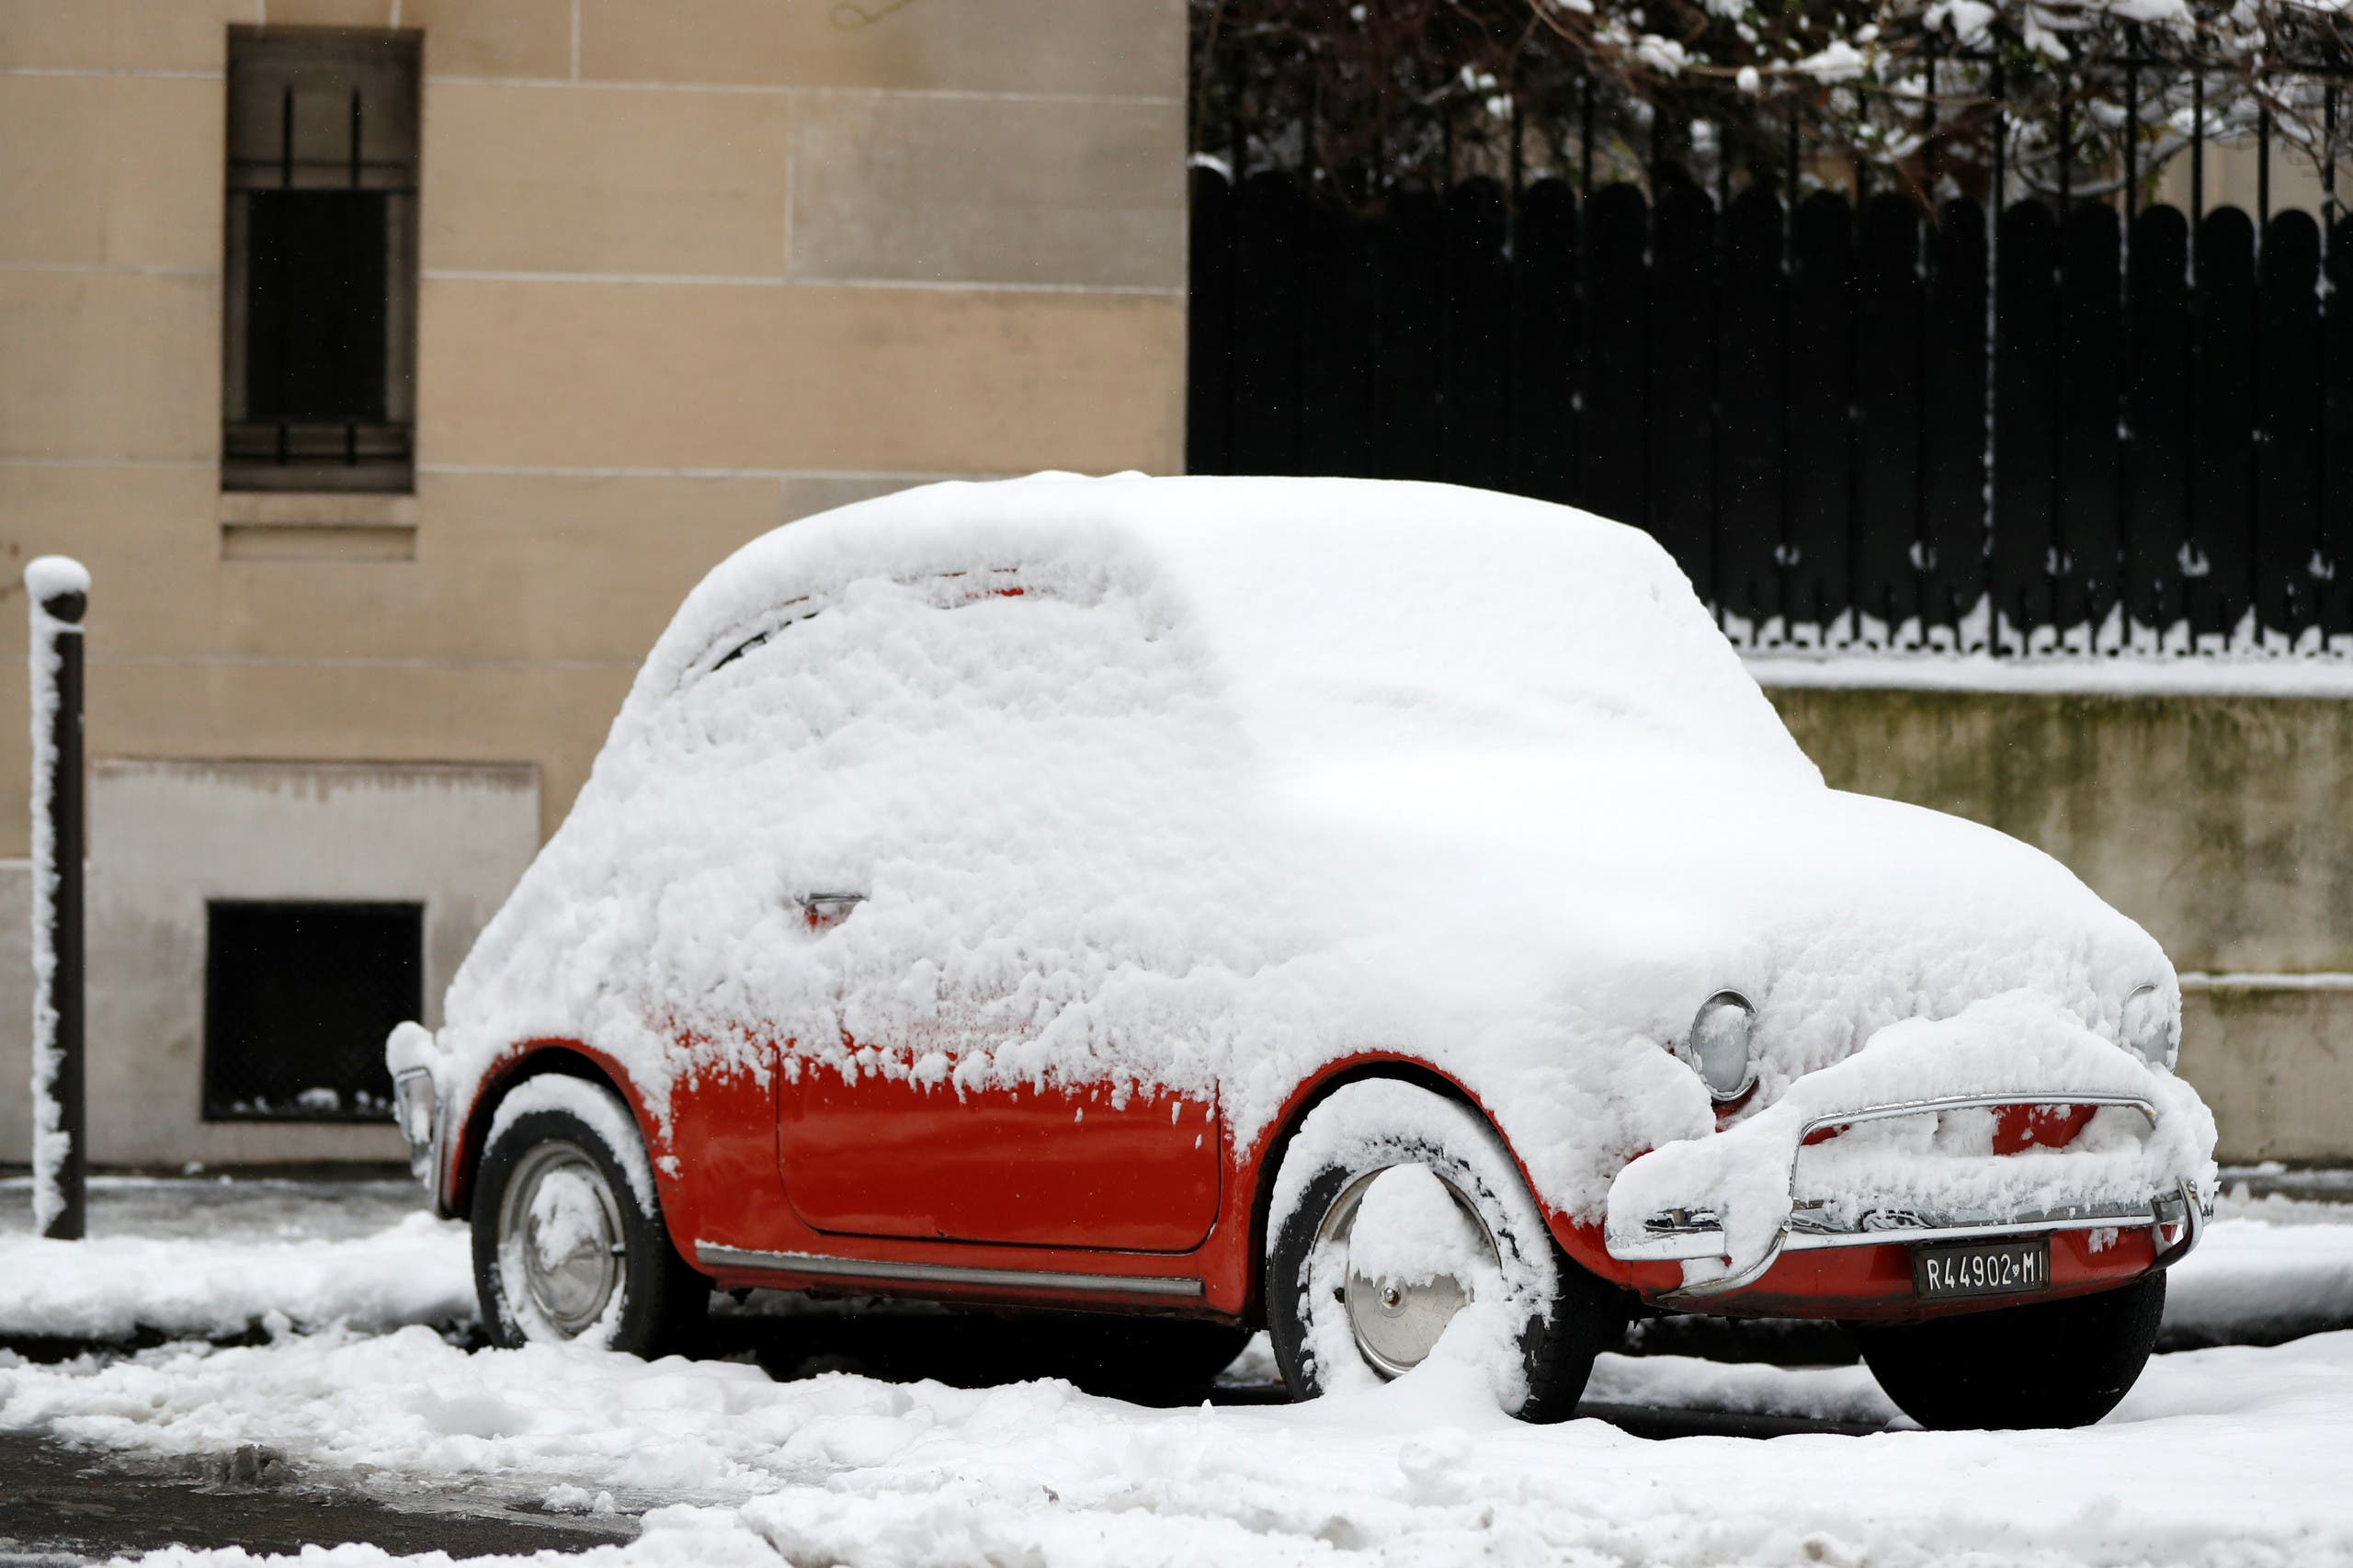 A snow-covered classic car fiat 500 is parked in a street in Paris as winter weather with snow and freezing temperatures arrive in France, February 7, 2018. REUTERS/